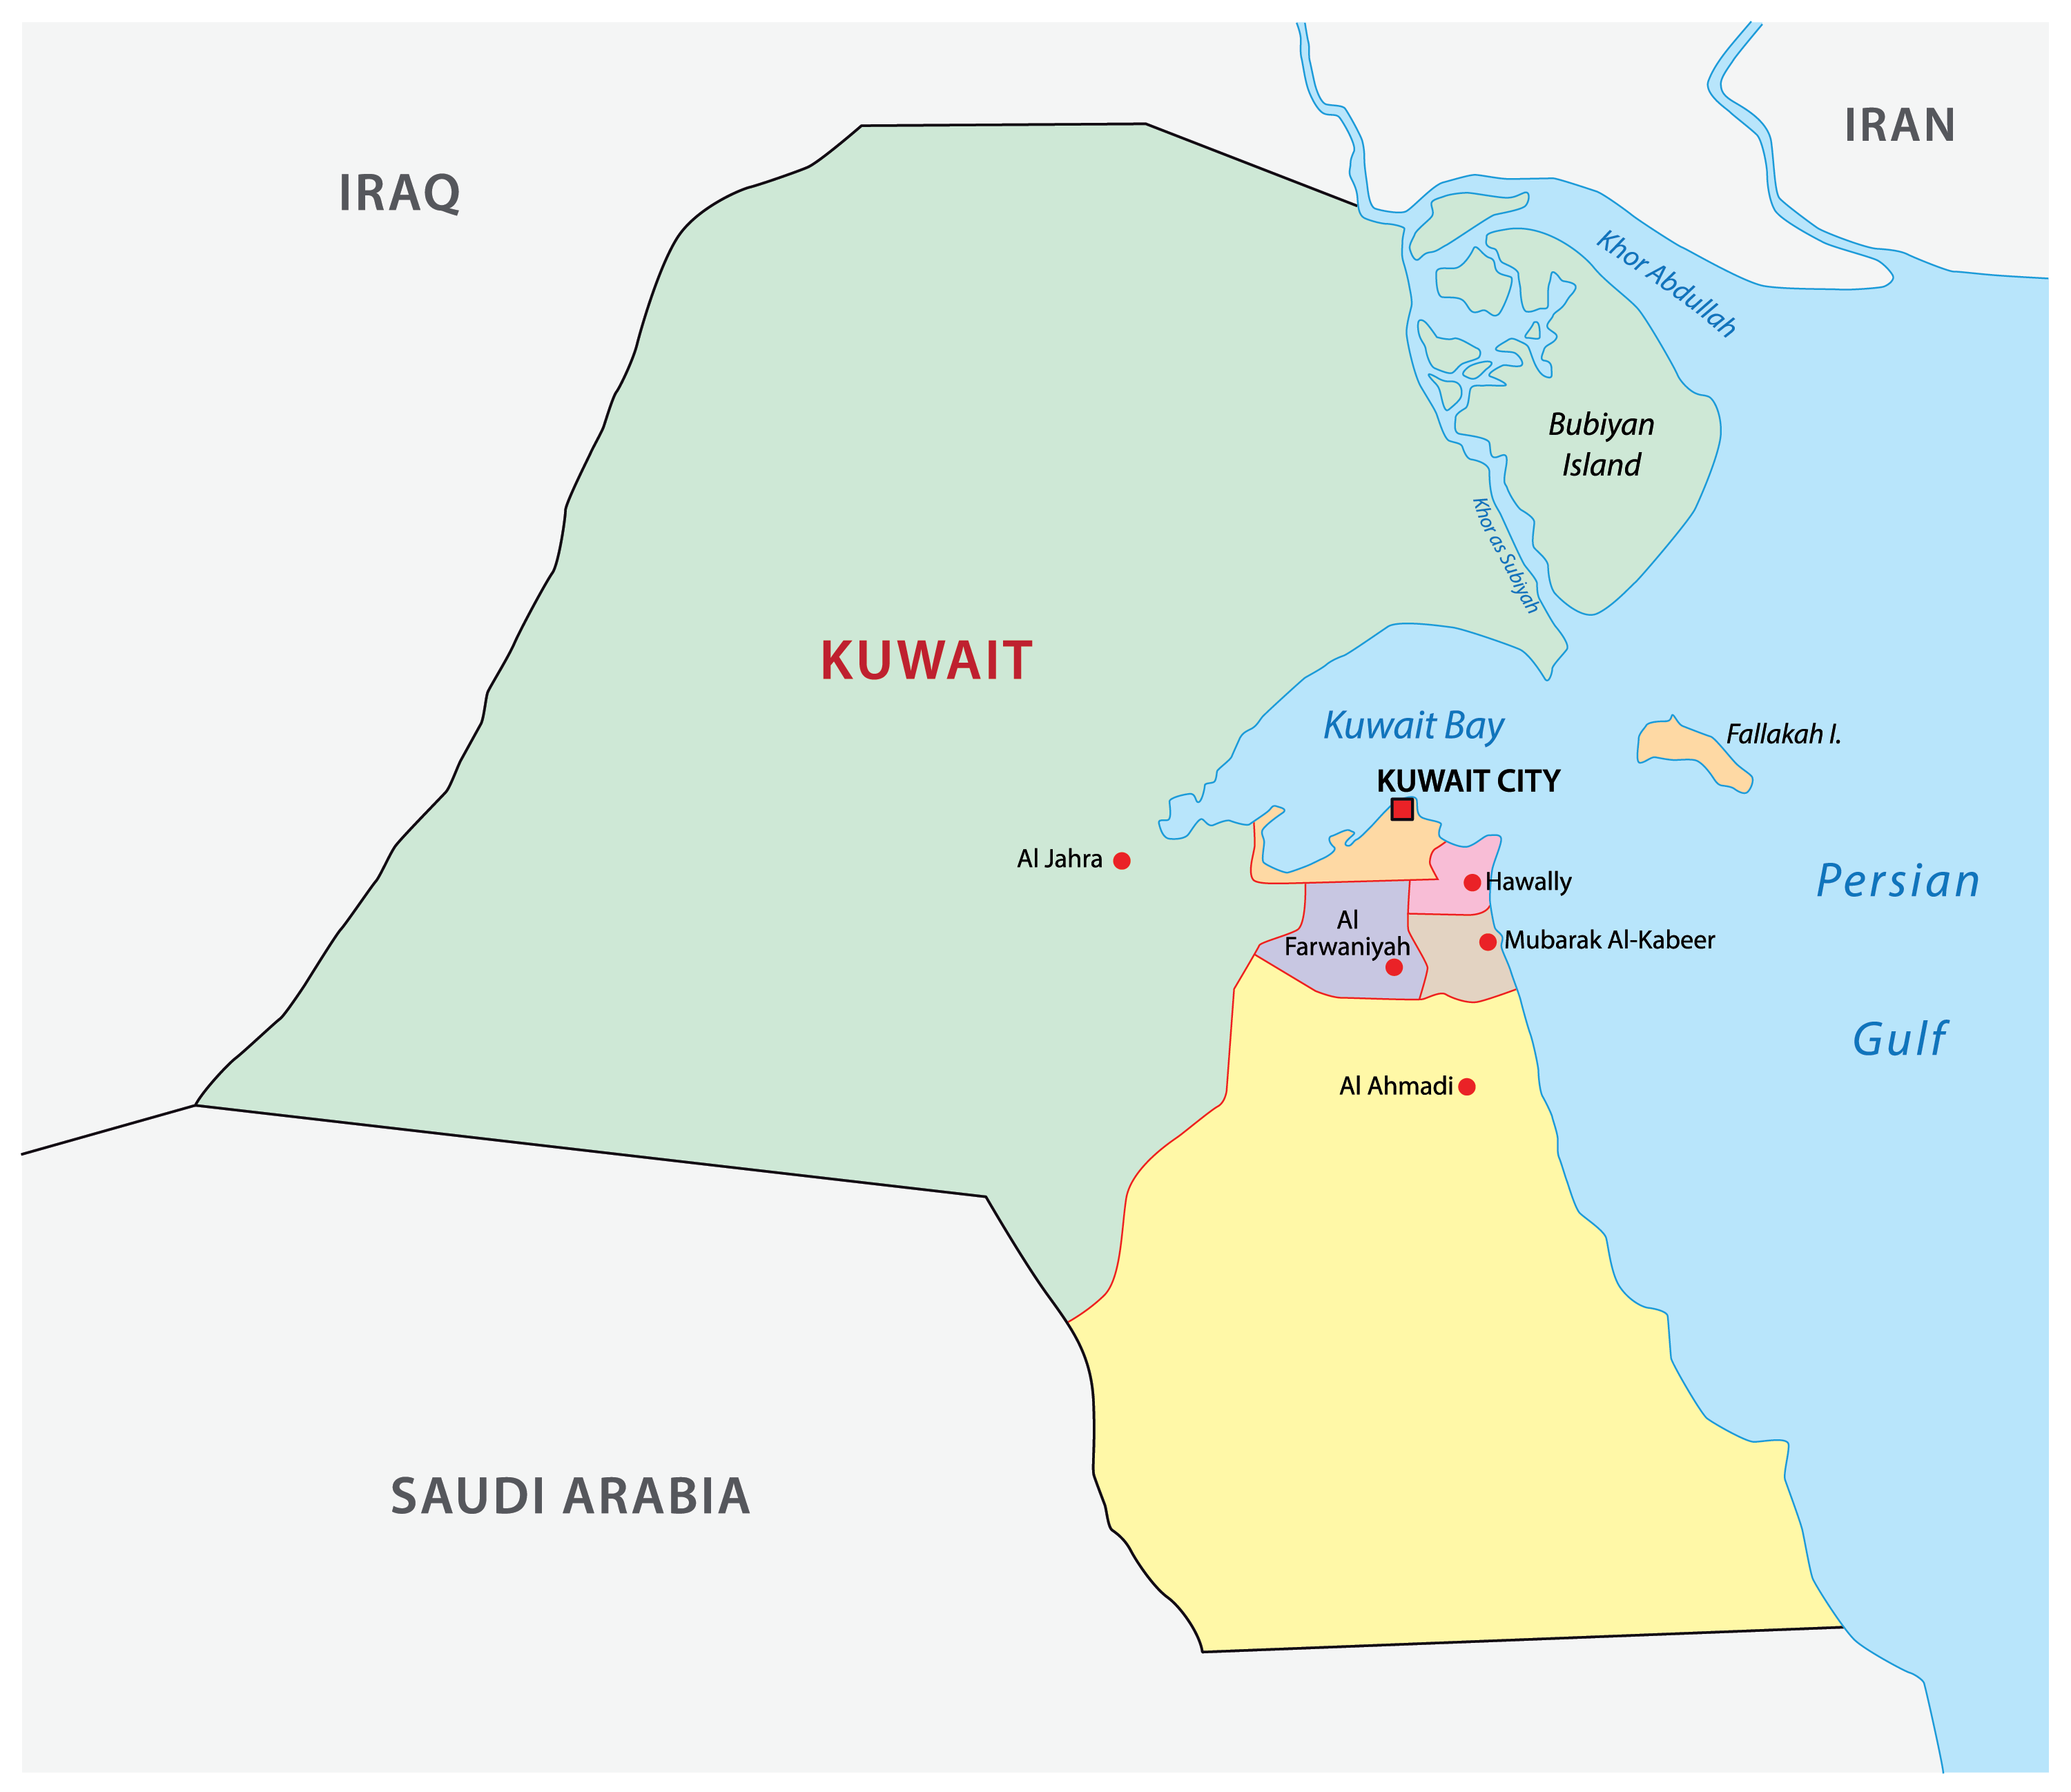 Political Map of Kuwait showing the 6 governorates of the country, their capitals, and the national capital of Kuwait City.